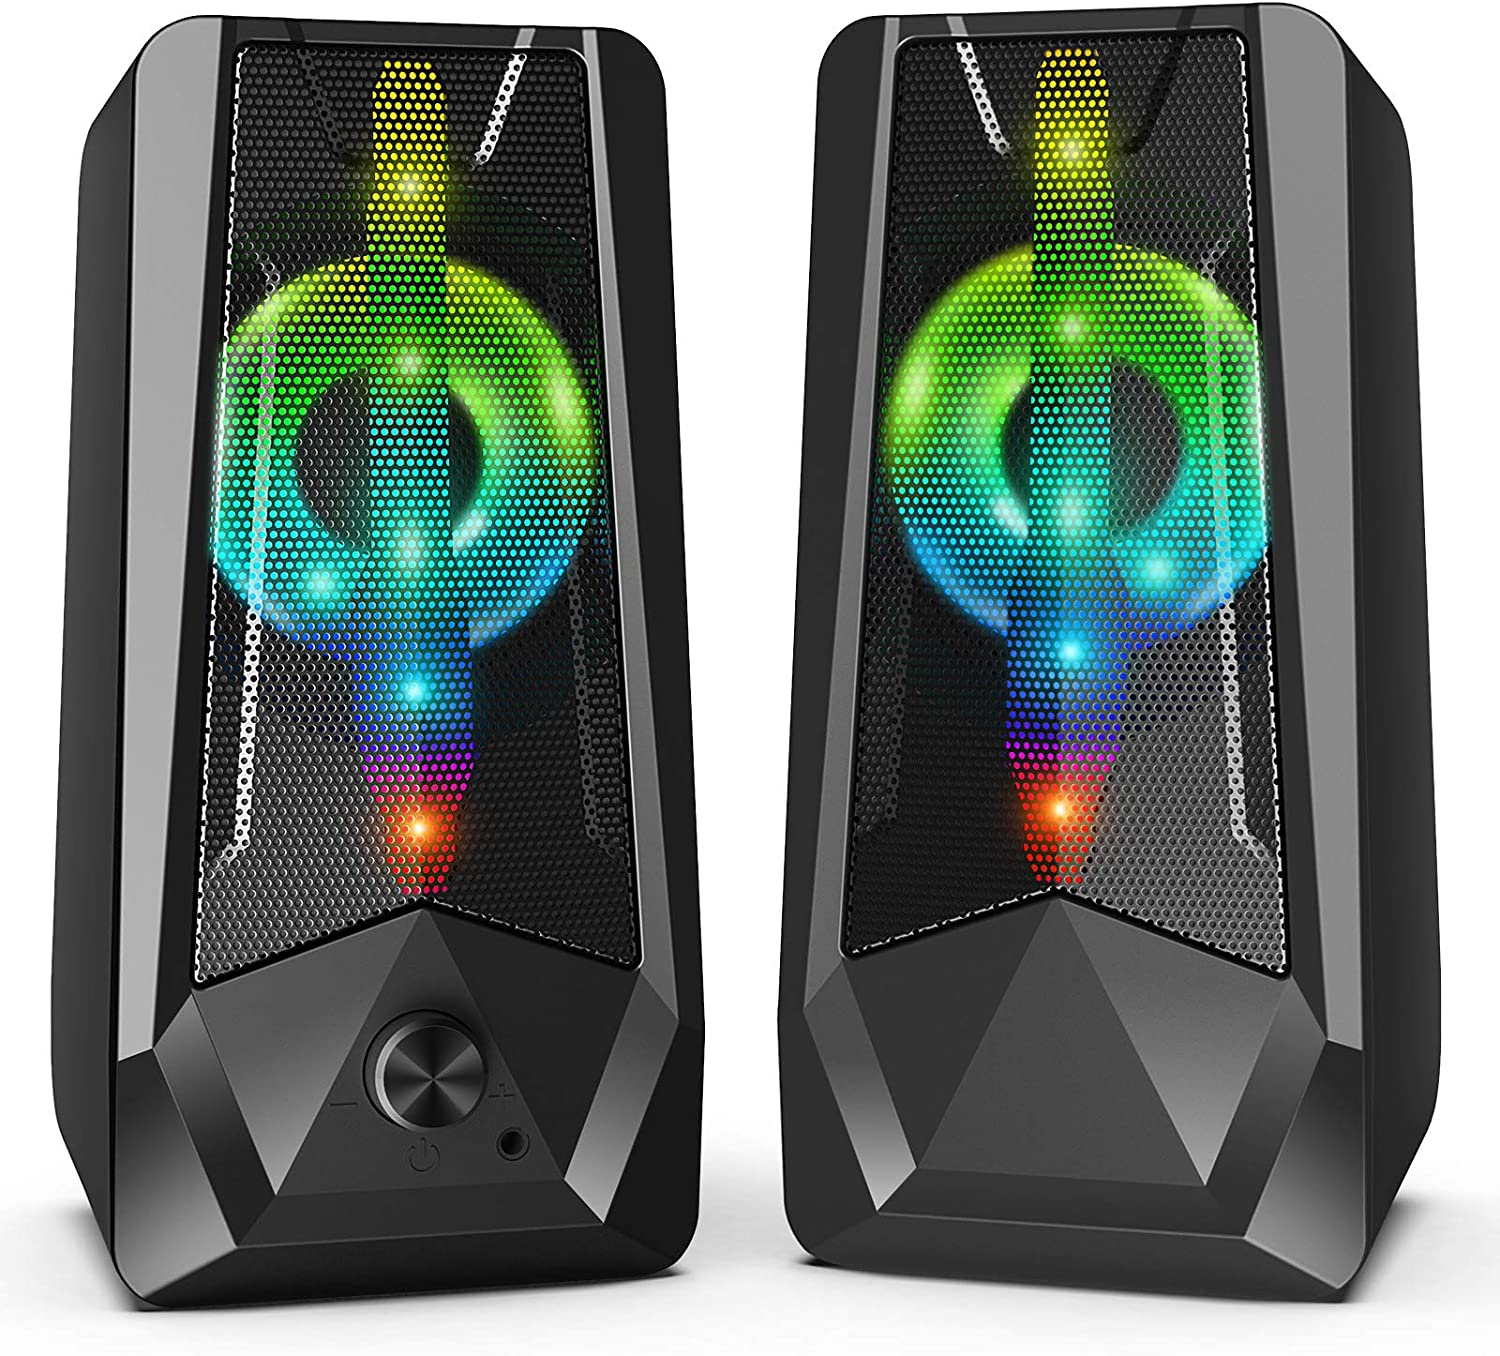 16W PC Gaming Speakers Imdwimd USB Wired Computer Speakers with Enhanced Stereo Colorful 6-Modes RGB Light, Dual-Channel Gaming Speakers for Desktop Tablet Computer Laptop Small TV (8Wx2)